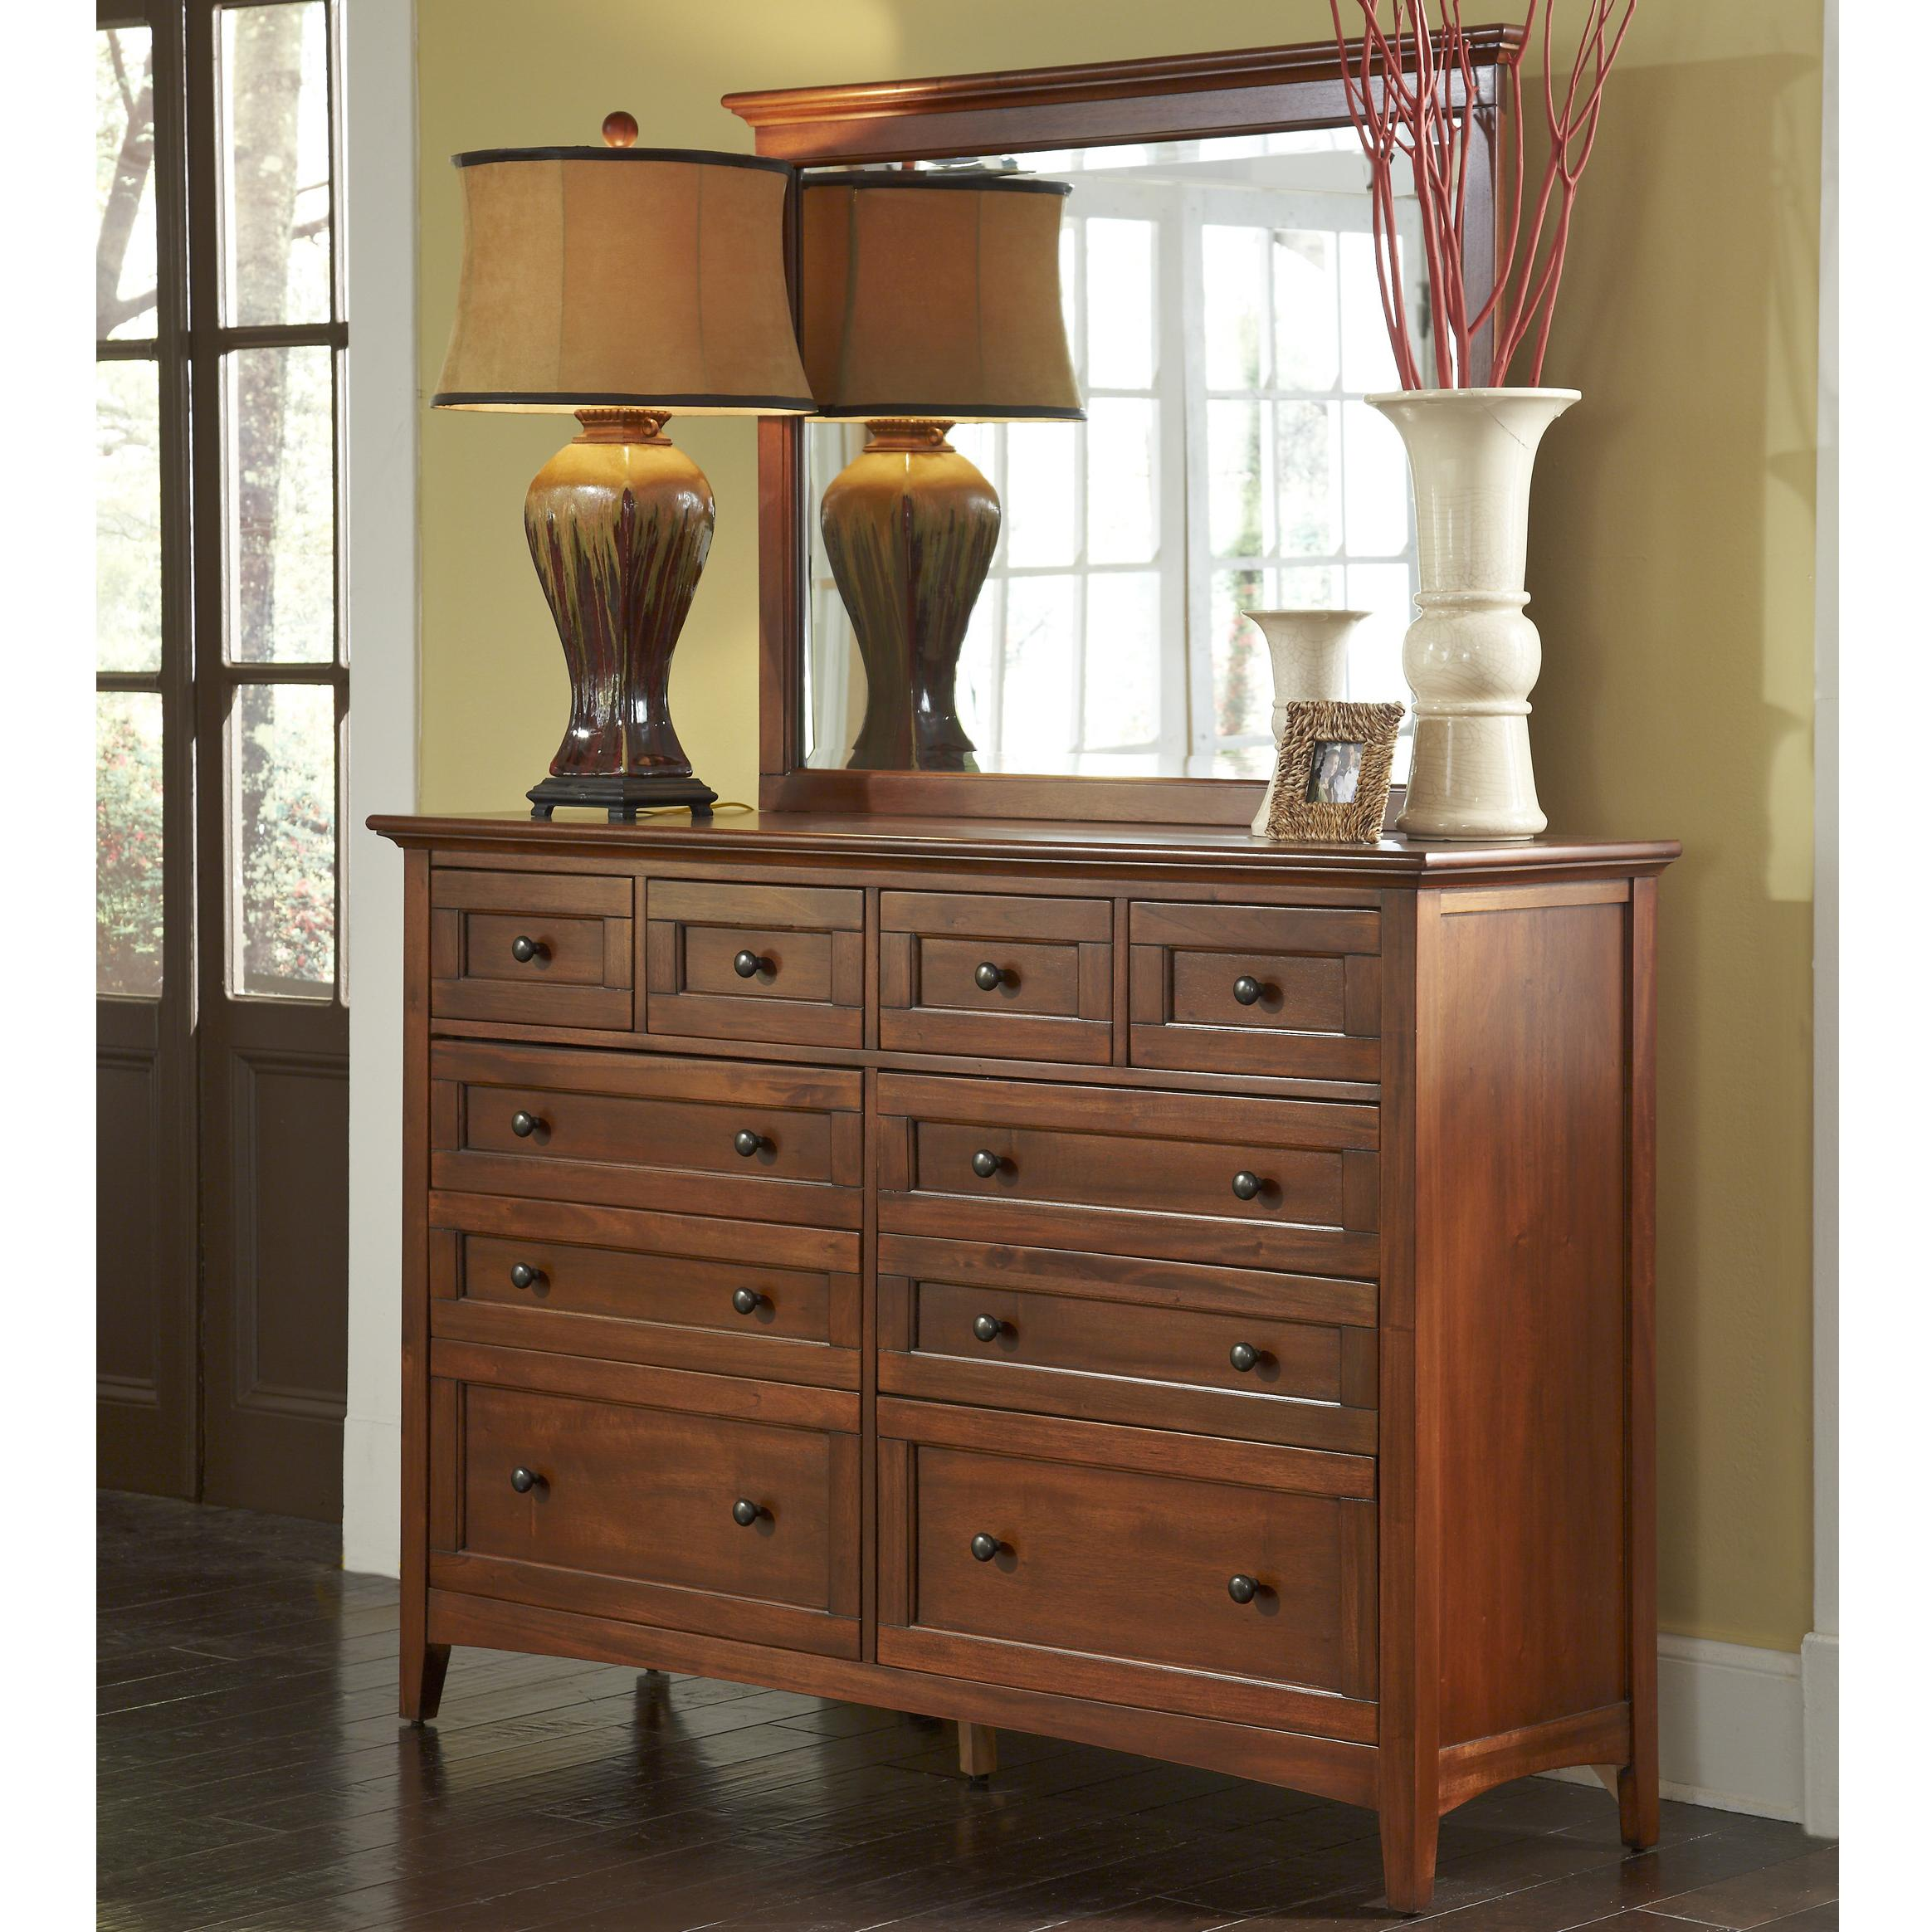 Transitional 10 Drawer Dresser with Felt Lined Top Drawers by